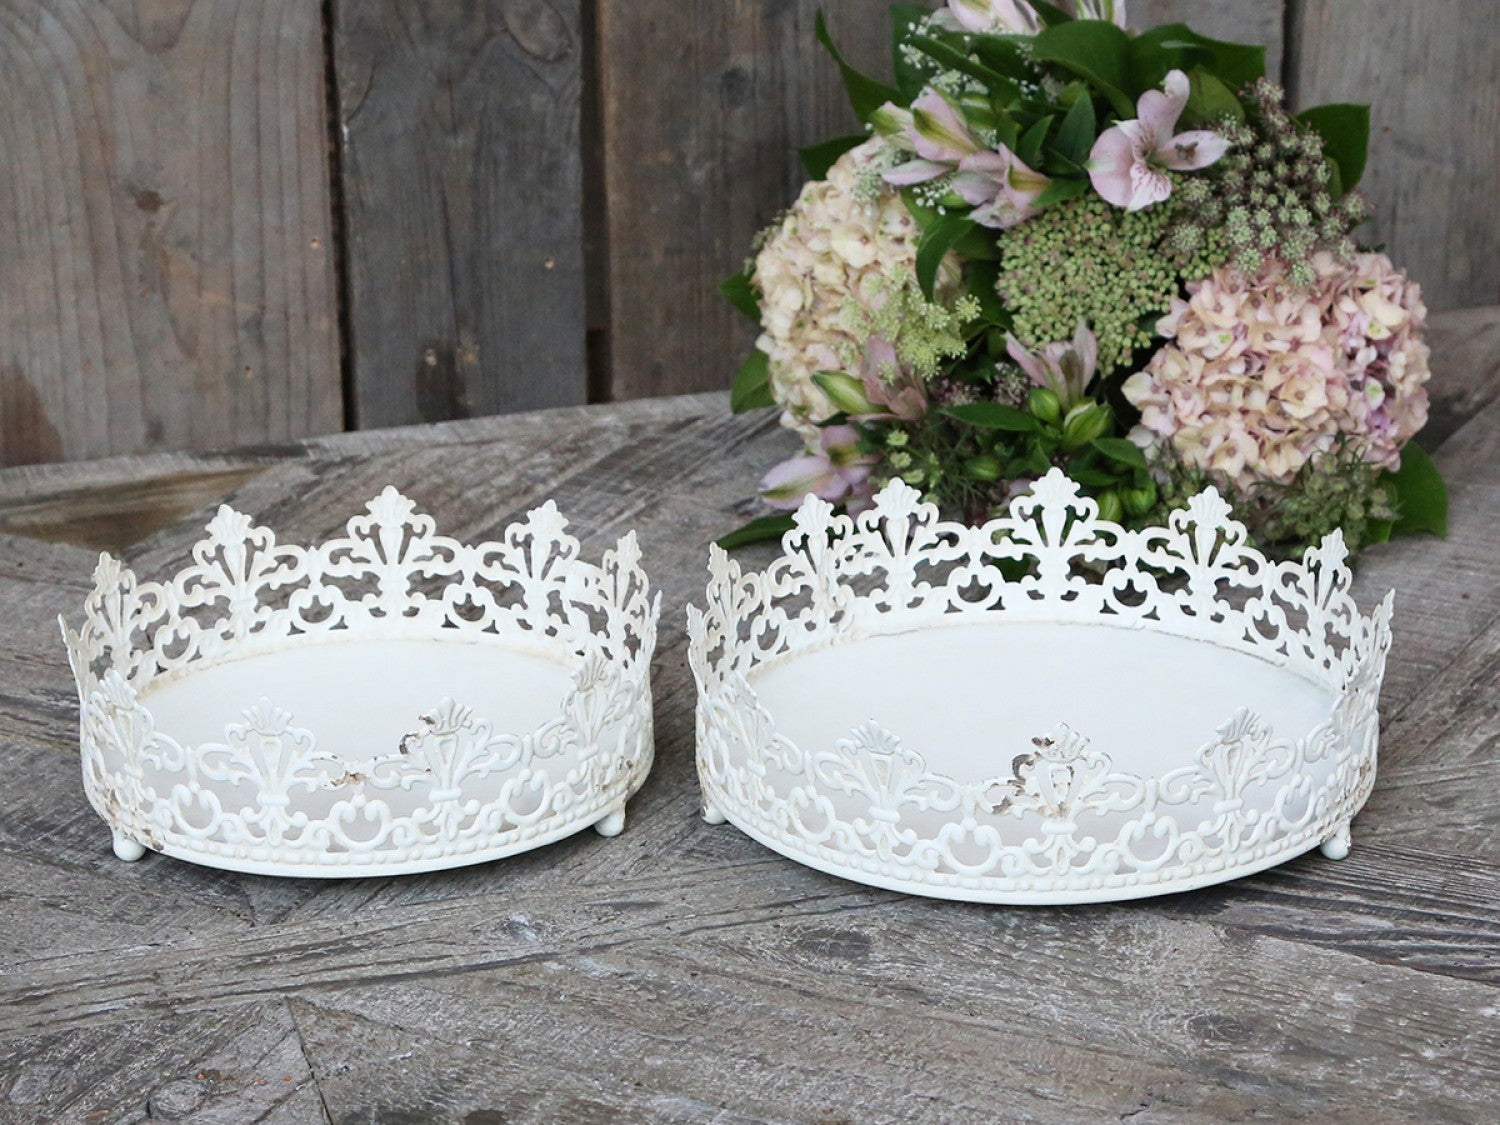 Antique Cream Lace Effect Tray - 2 Sizes